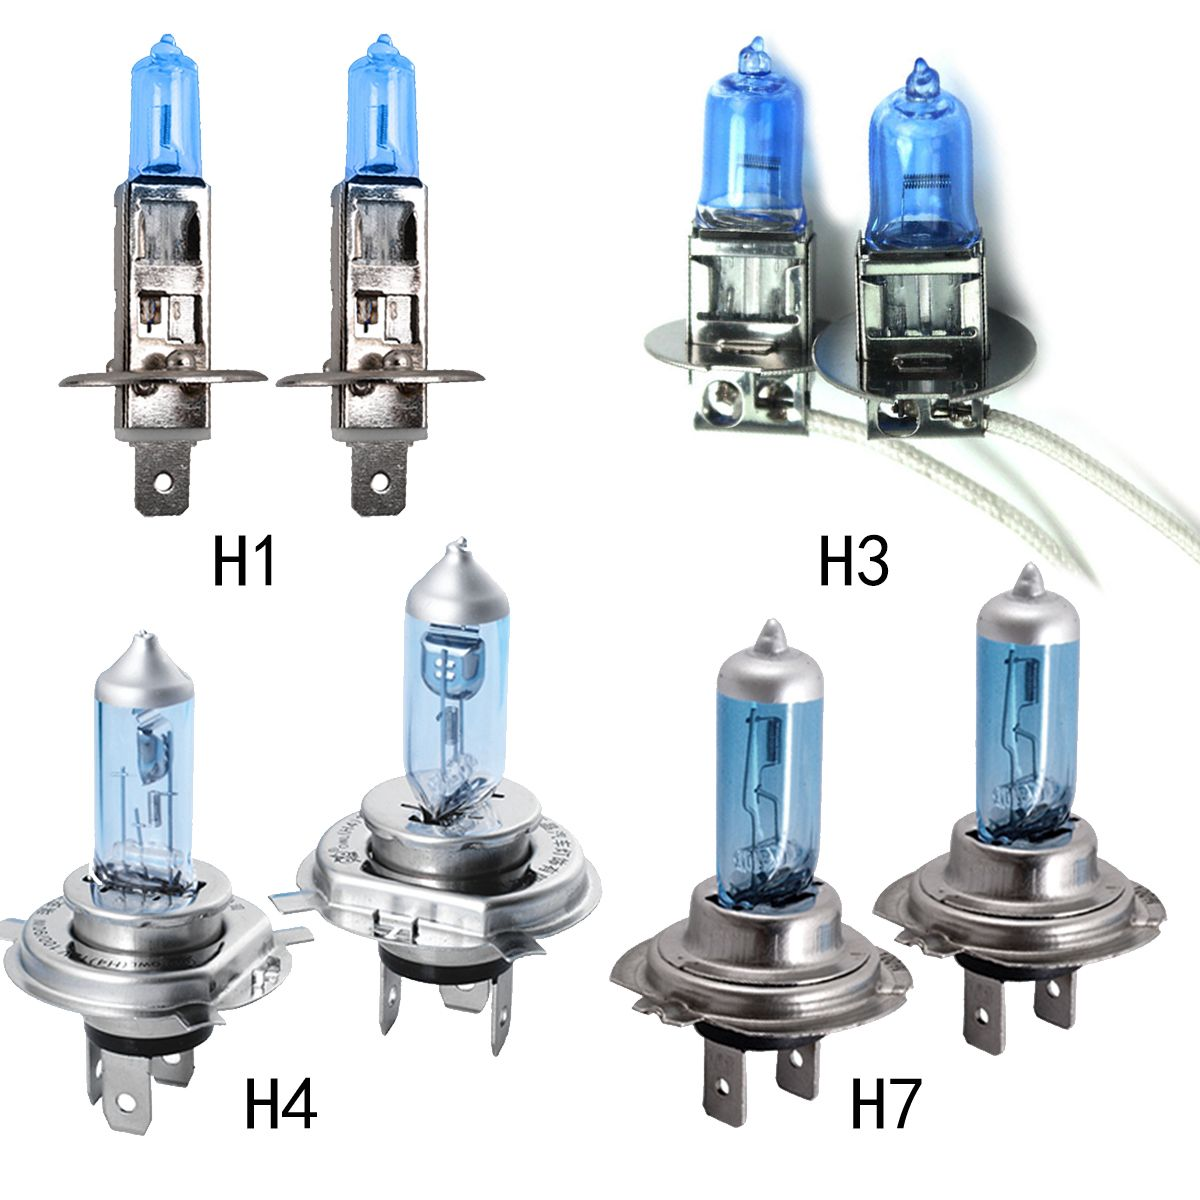 10 pcs Voiture Phare H1 H3 H4 H7 Lampe Super Blanc Car Auto Head